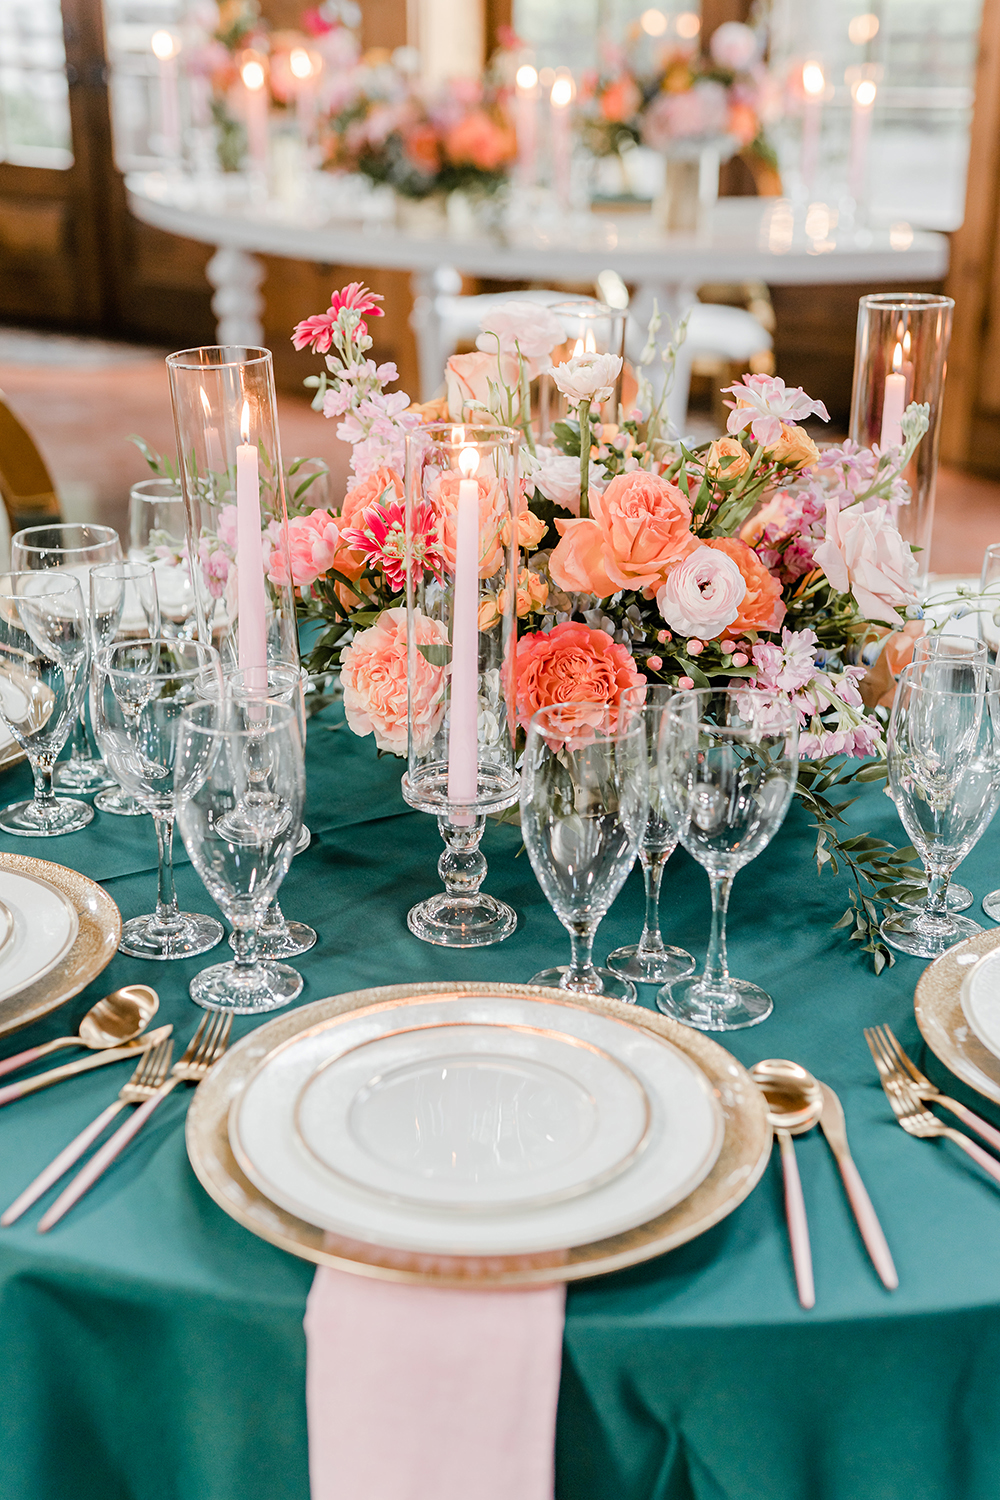 Pink lit tapered candles sit atop of a table that is adorned with emerald linens and soft pink napkins, crystal glassware, and floral decor.